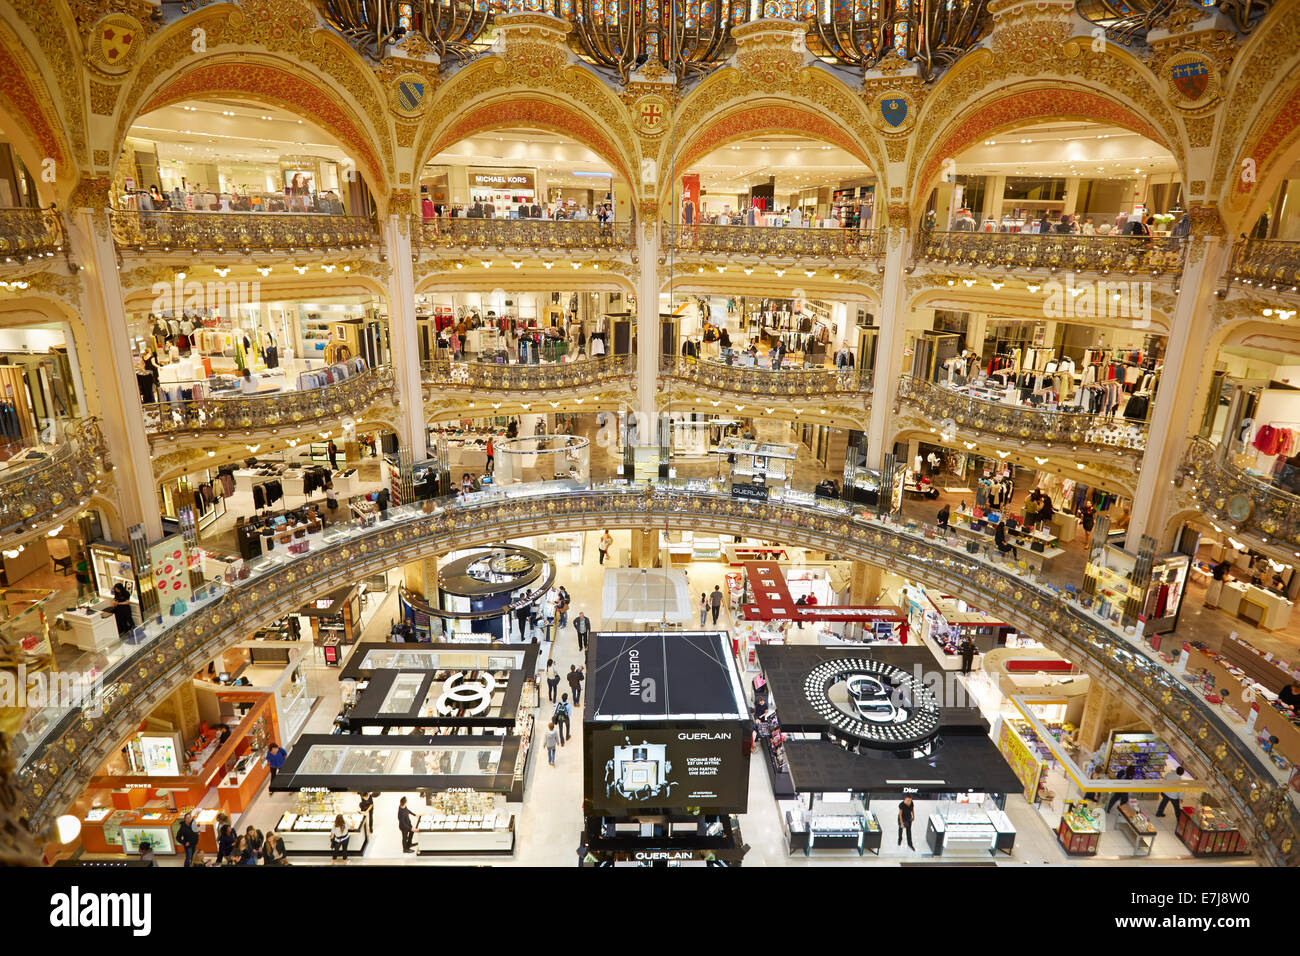 Shopping Mall Galeries Lafayette High Resolution Stock Photography ...